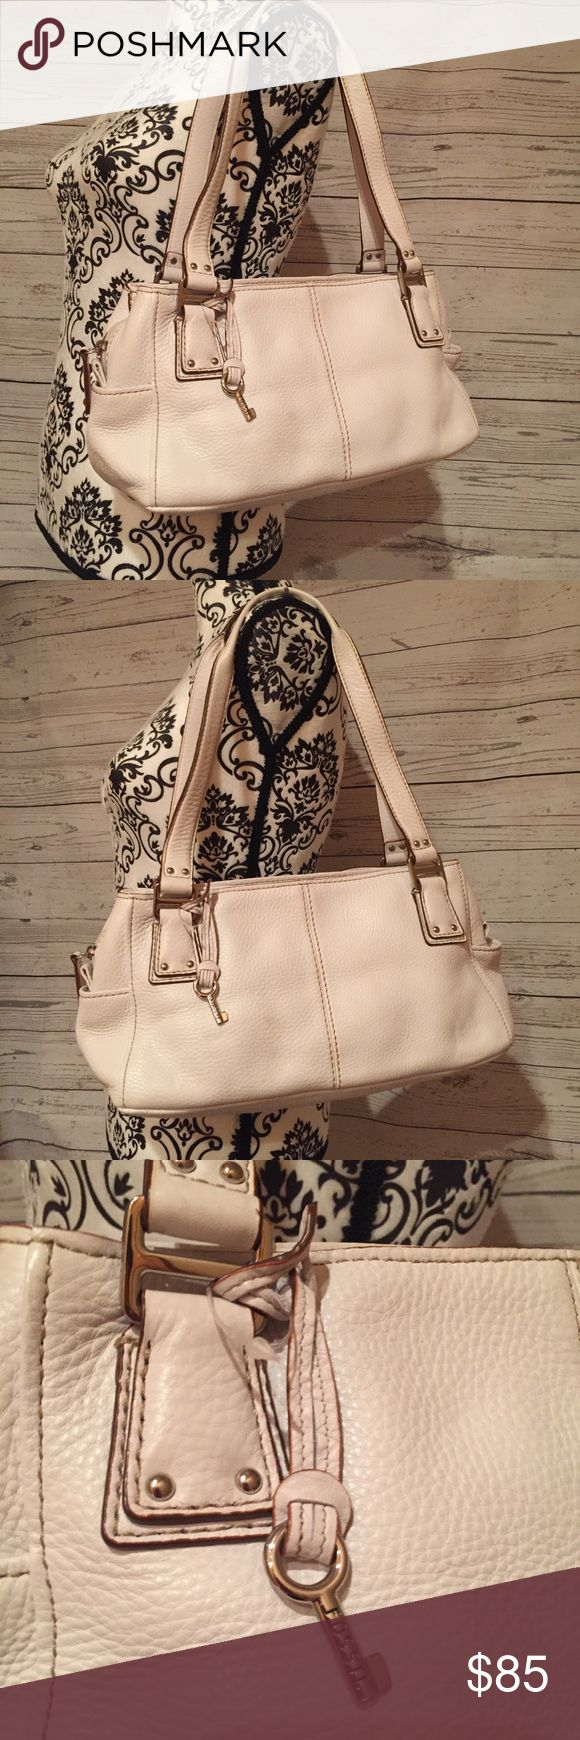 NWOT Fossil Purse $4.99 shipping Genuine Leather - Authentic Fossil  NWOT you can see the plastic tag holder is still attached but the price tag removed  3 compartments. Two sides snap closed. Middle zips closed.  No imperfections Fossil Bags